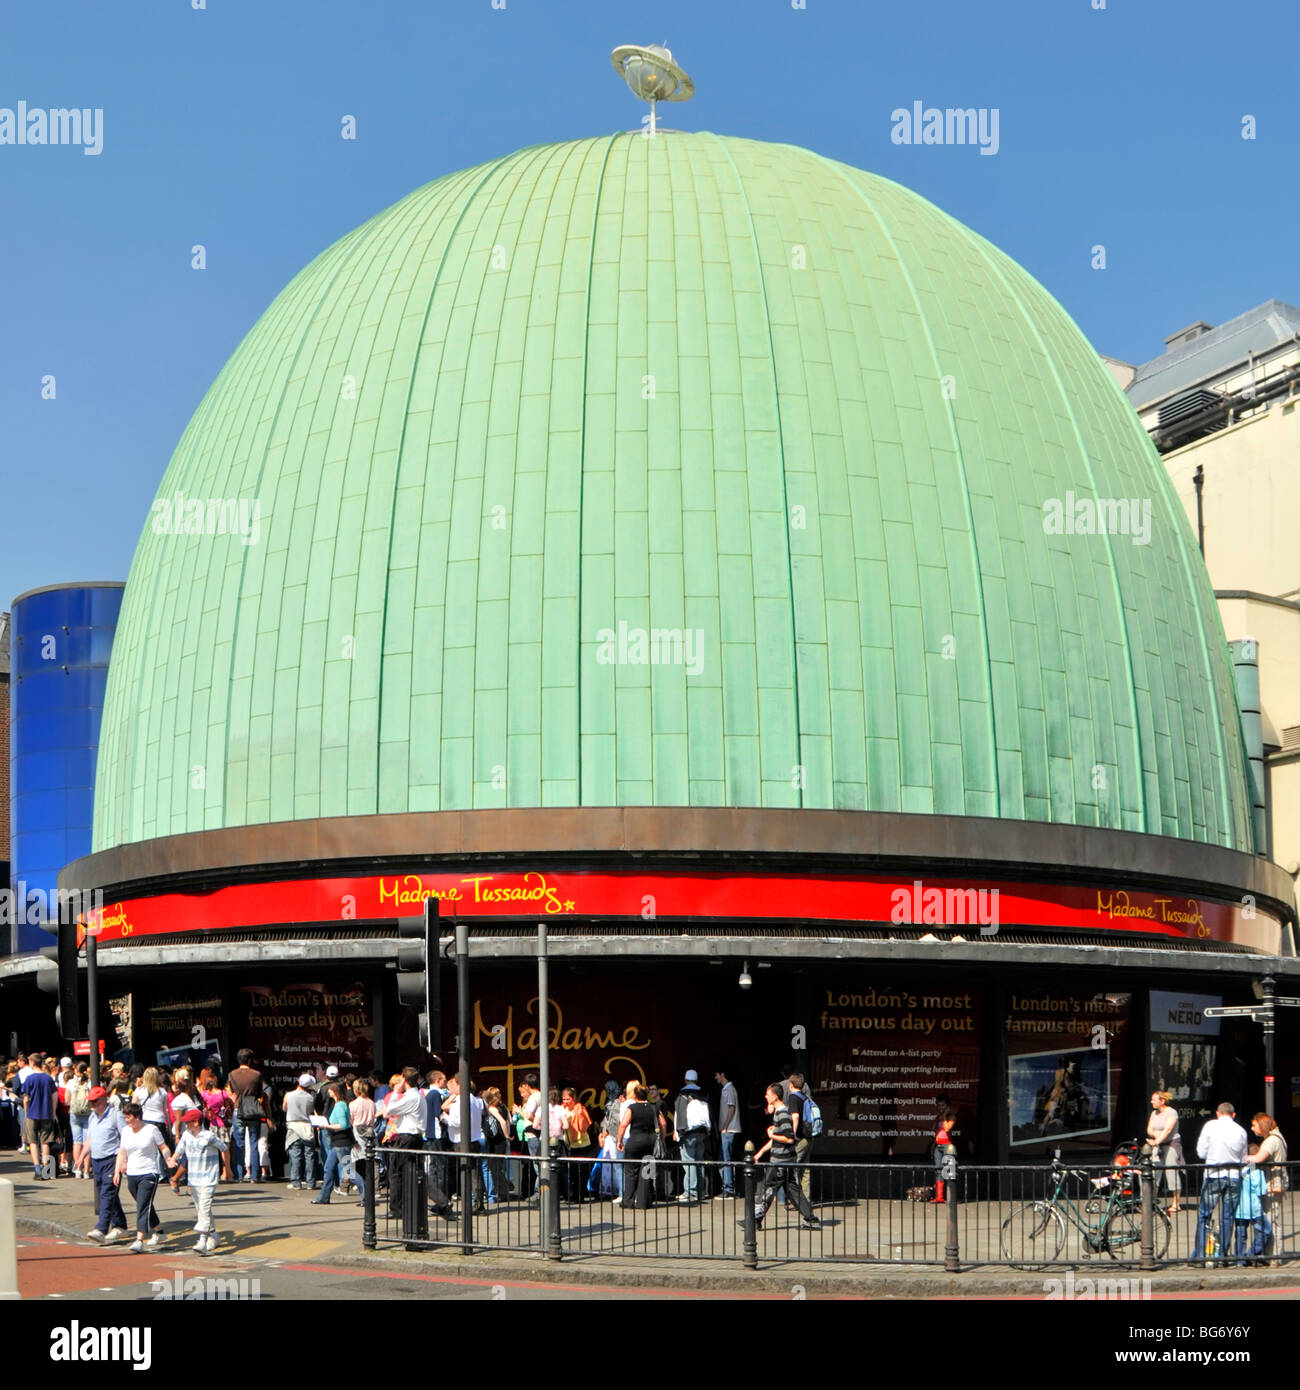 People in London street scene below green patina coating on copper roof of dome at part of Madame Tussauds Wax Museum - Stock Image